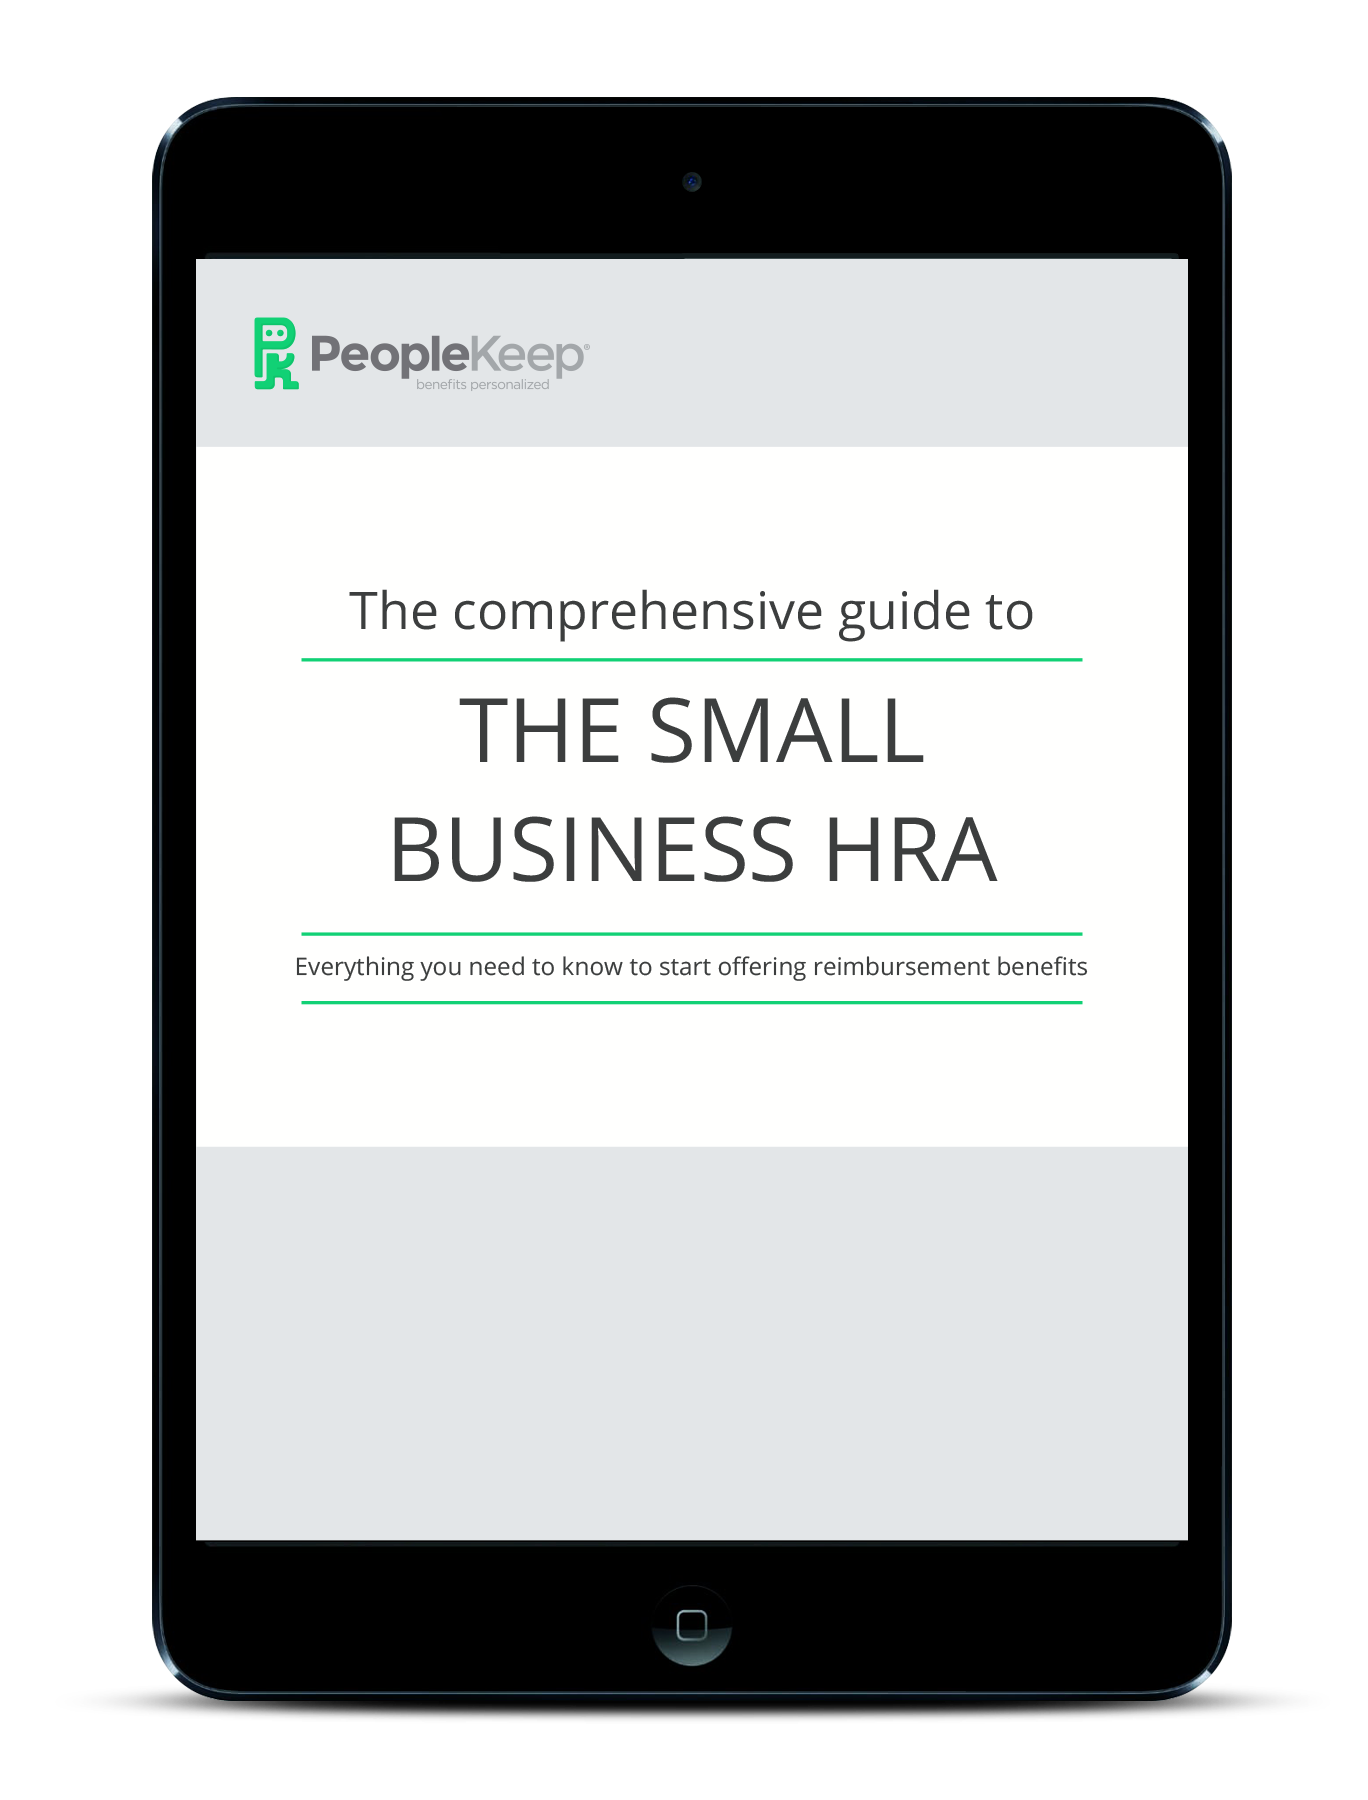 3 Reasons HRAs Are Good for Small Businesses